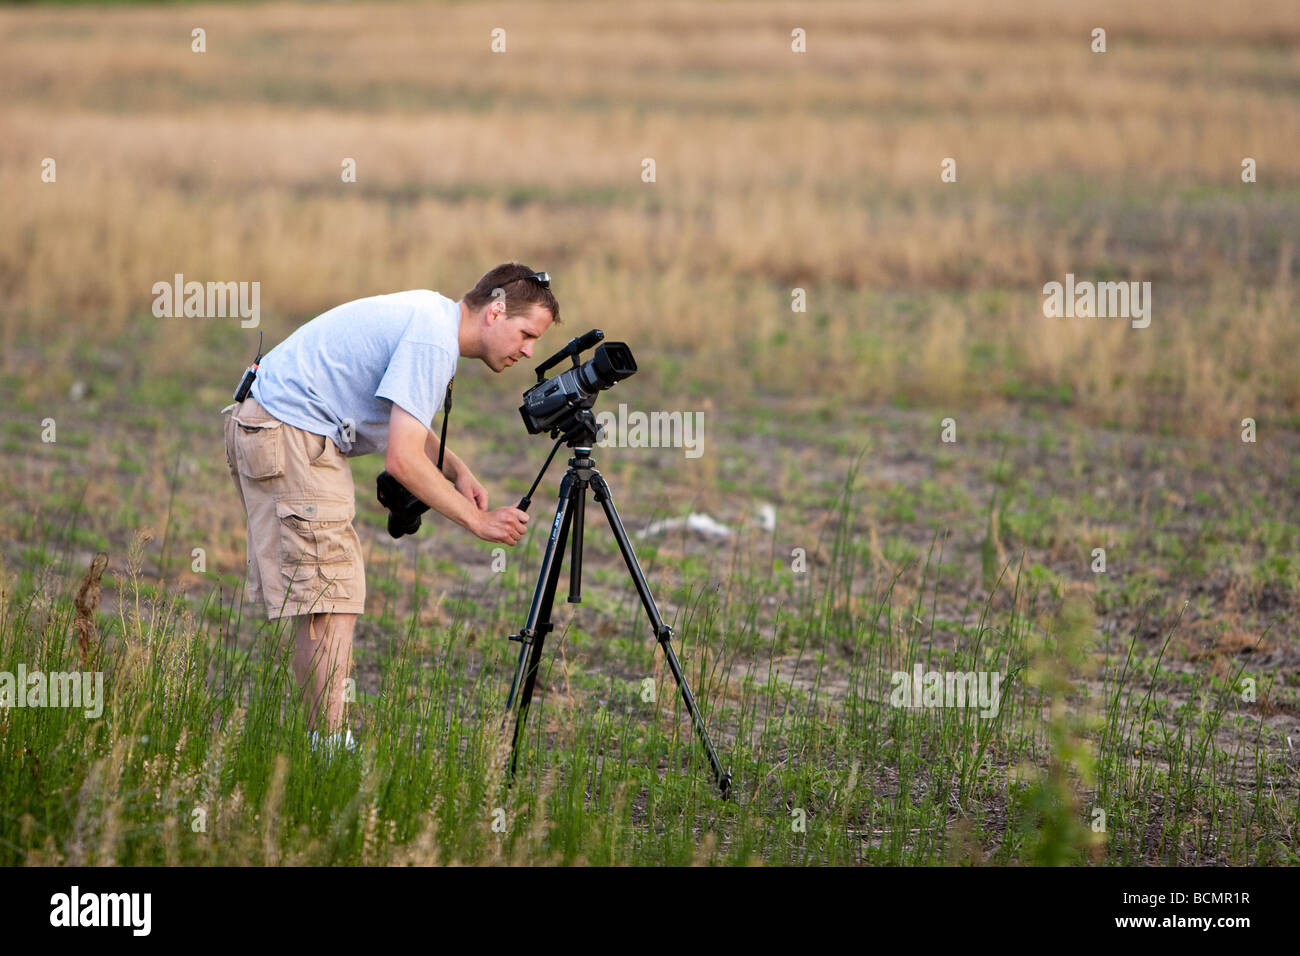 A storm chaser in southwest Iowa videos a storm for Project Vortex 2 - Stock Image